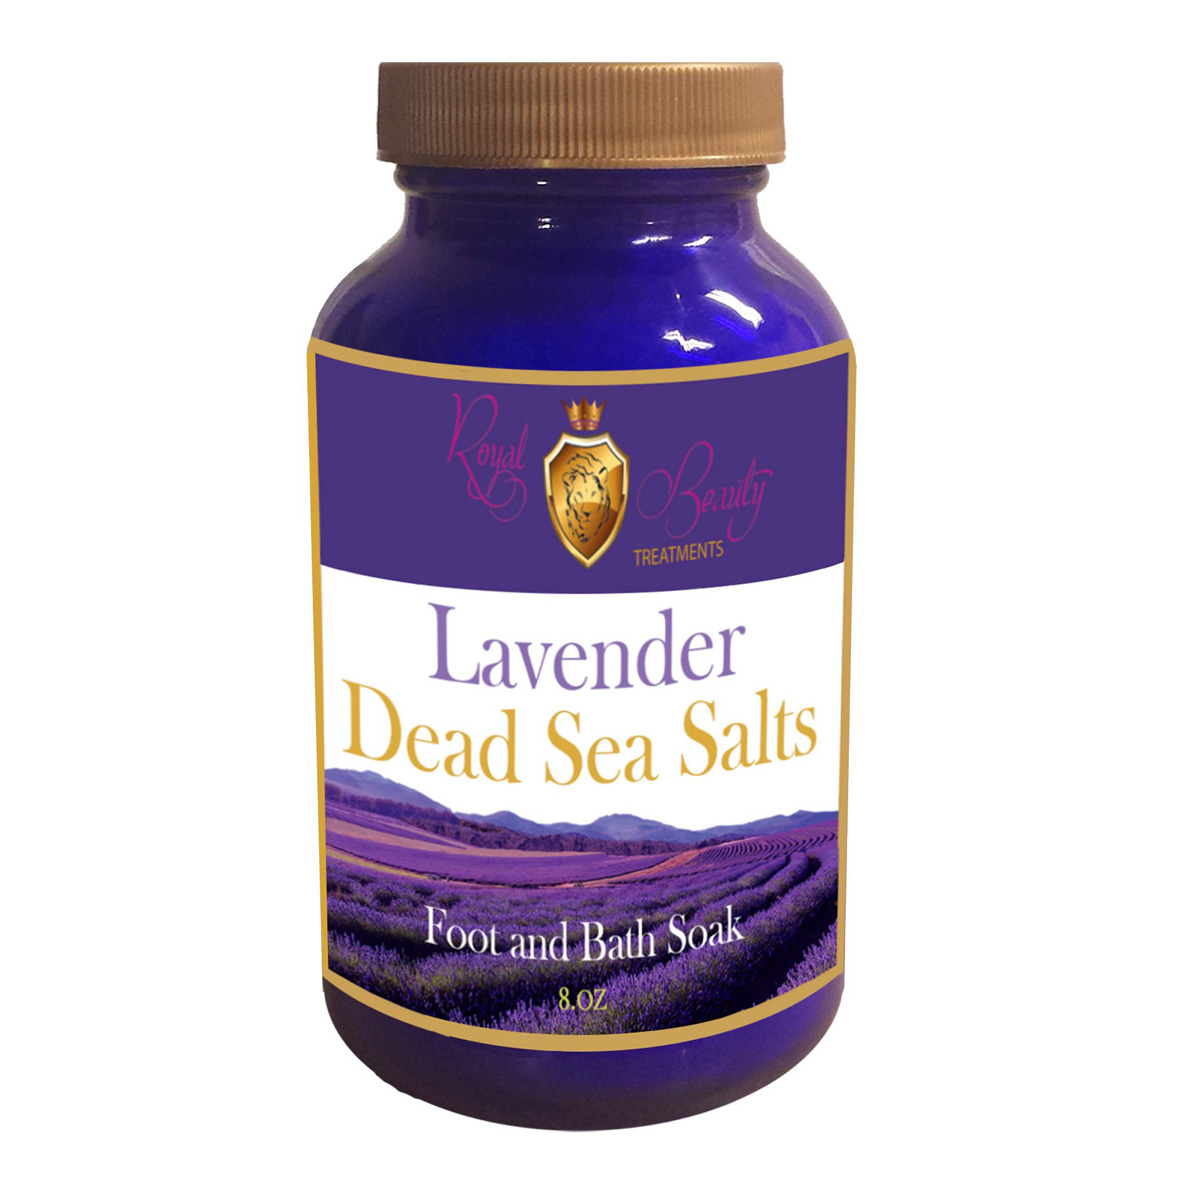 Lavender Dead Sea Salts 8 oz